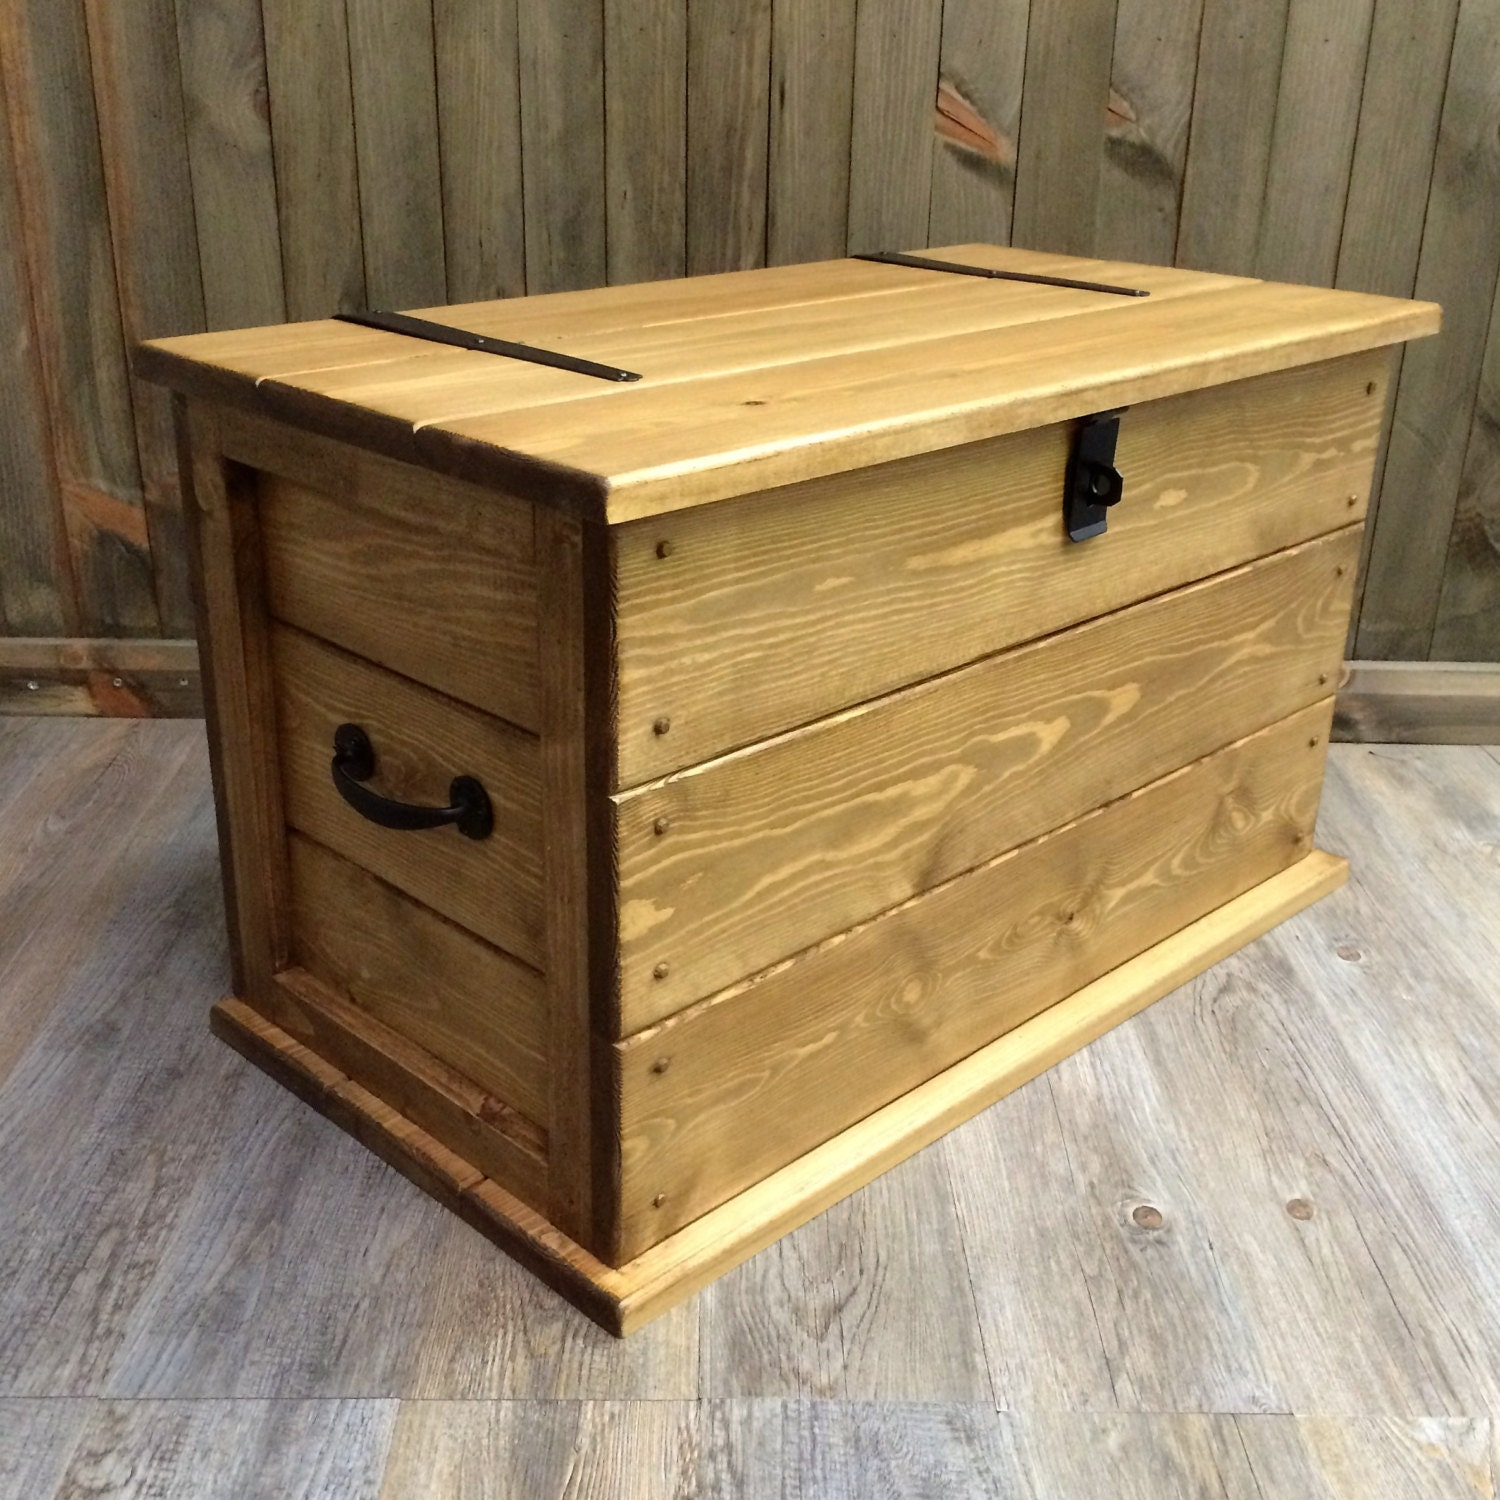 Trunk Coffee Table Pine: Handmade Solid Rustic Pine Trunk/Coffee Table. Boot/ Toy Box